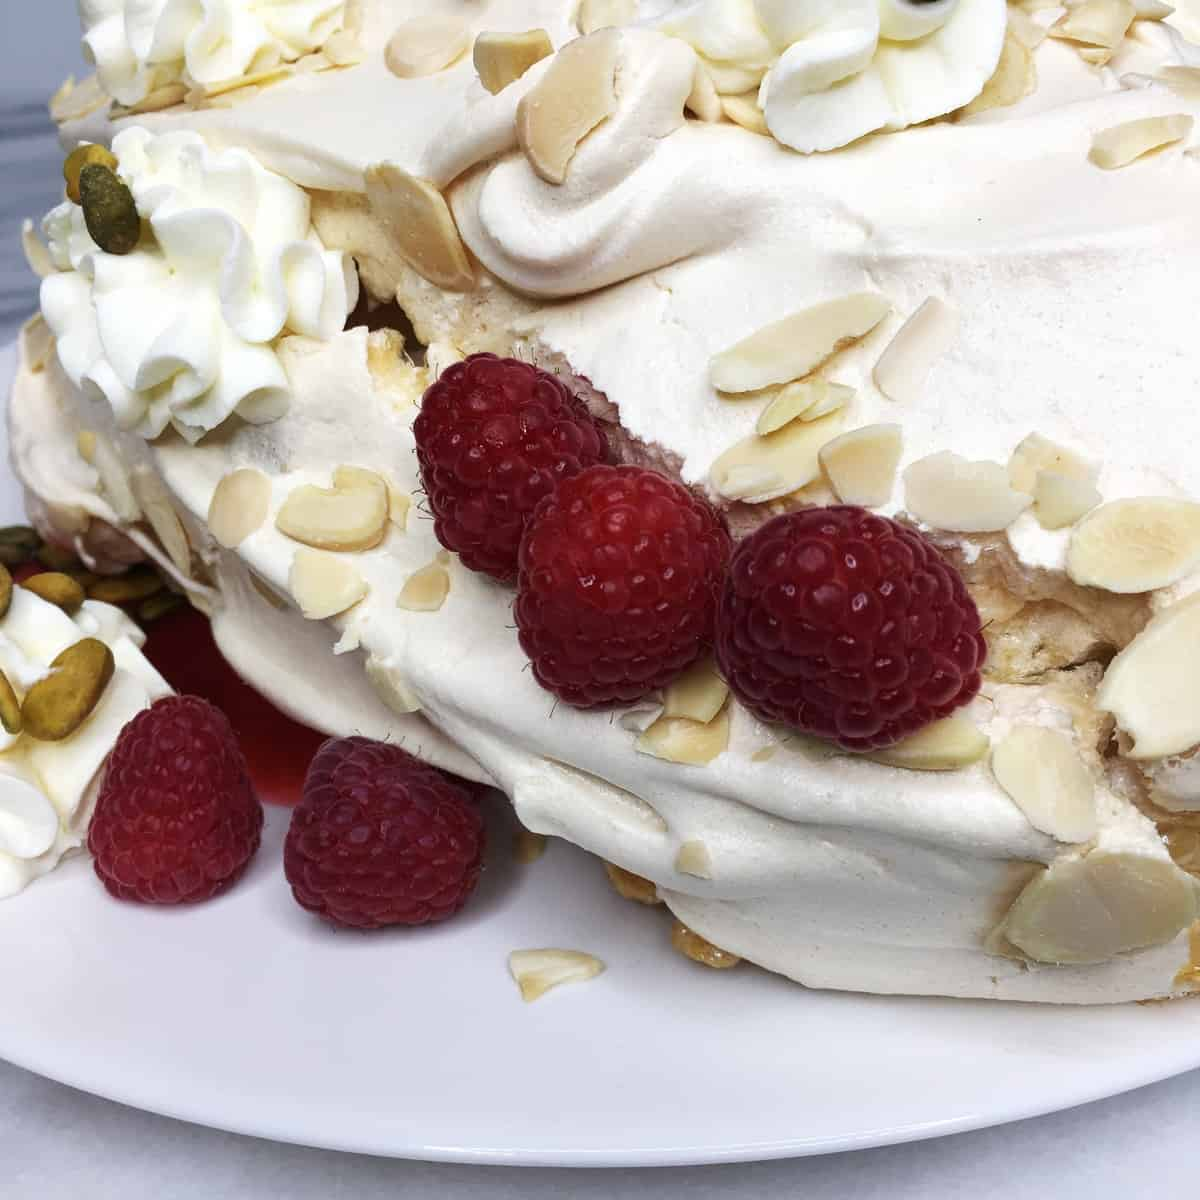 Giant meringue decorated with the piped cream, raspberries and nuts on a white plate